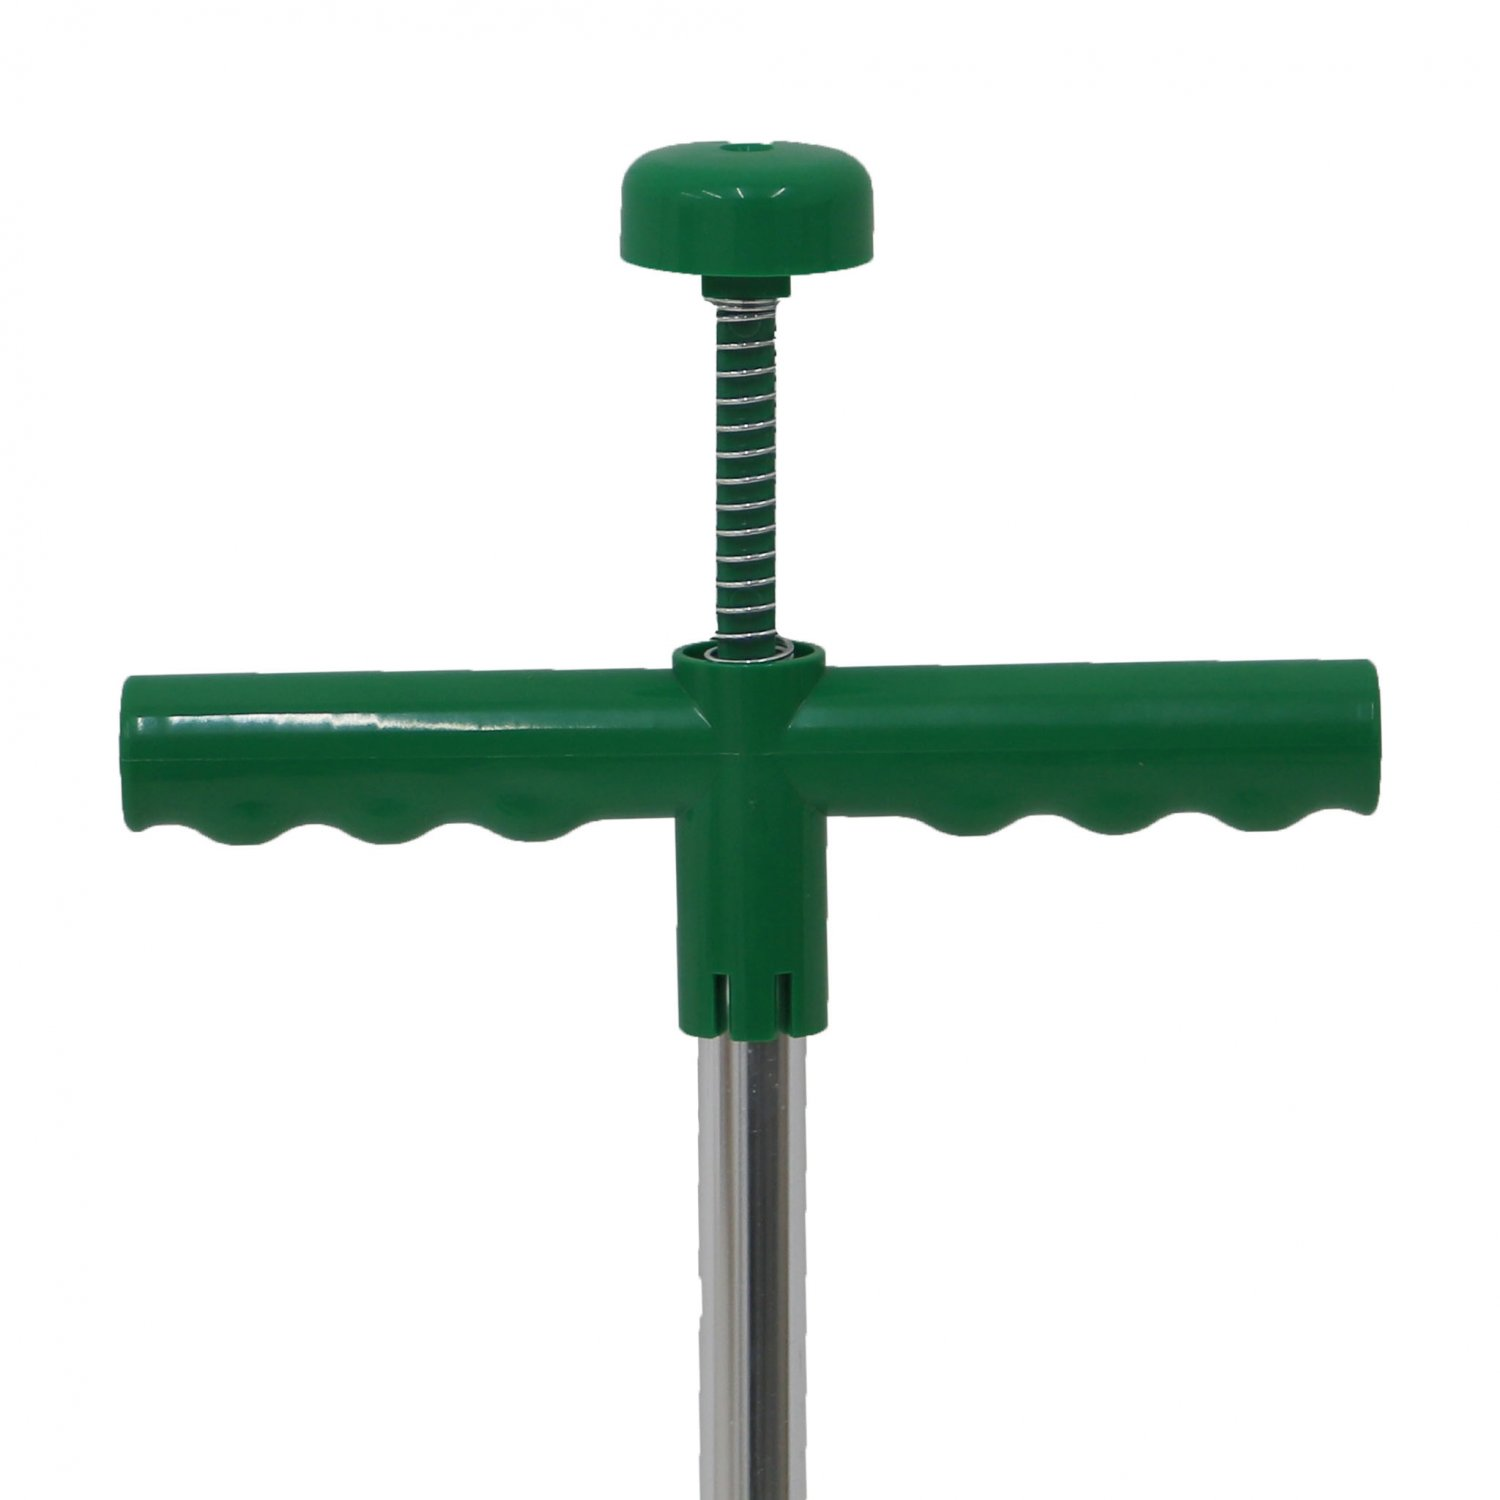 NEW! Weed Puller Twister Remover Weeder Manual Weeding Garden Tool